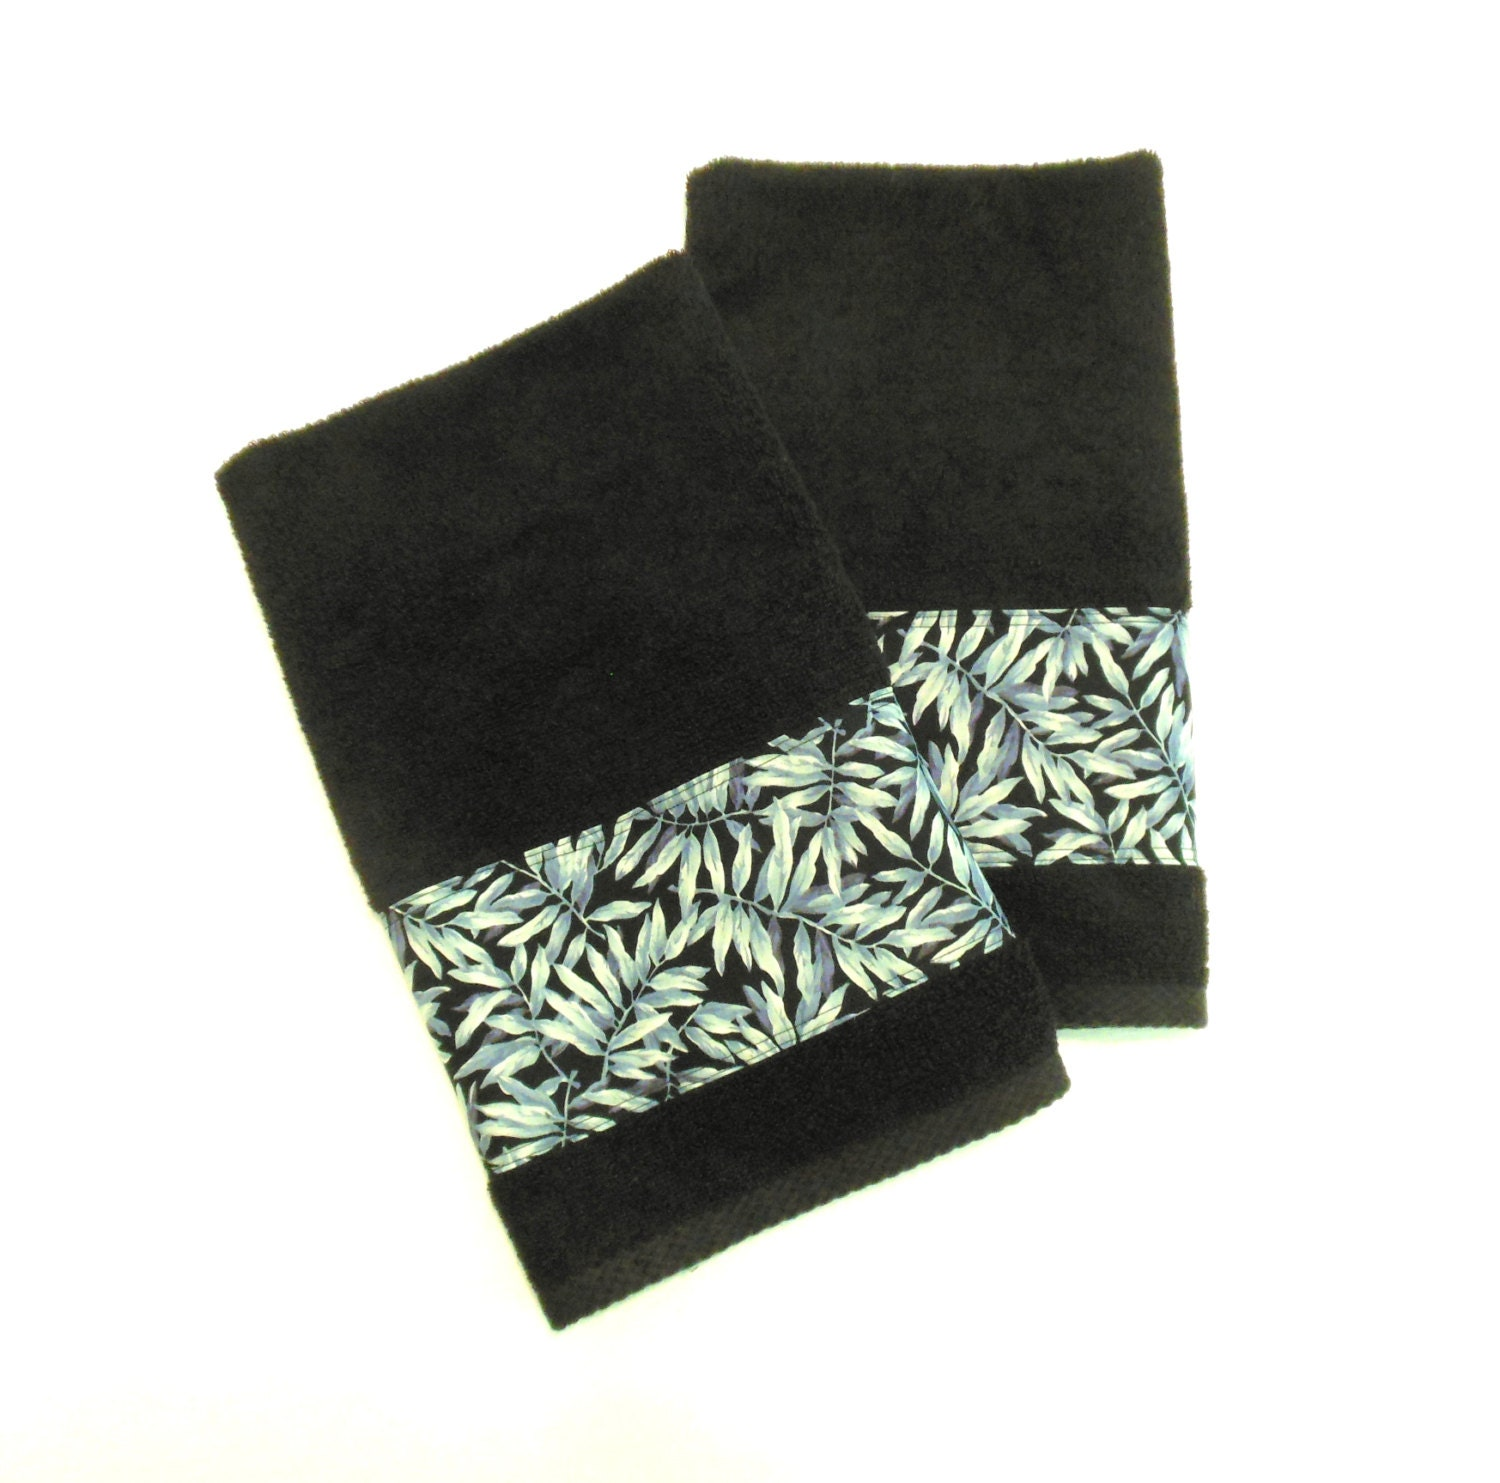 Black ferns hand towels decorative hand towels bathroom for Bathroom decorative towels